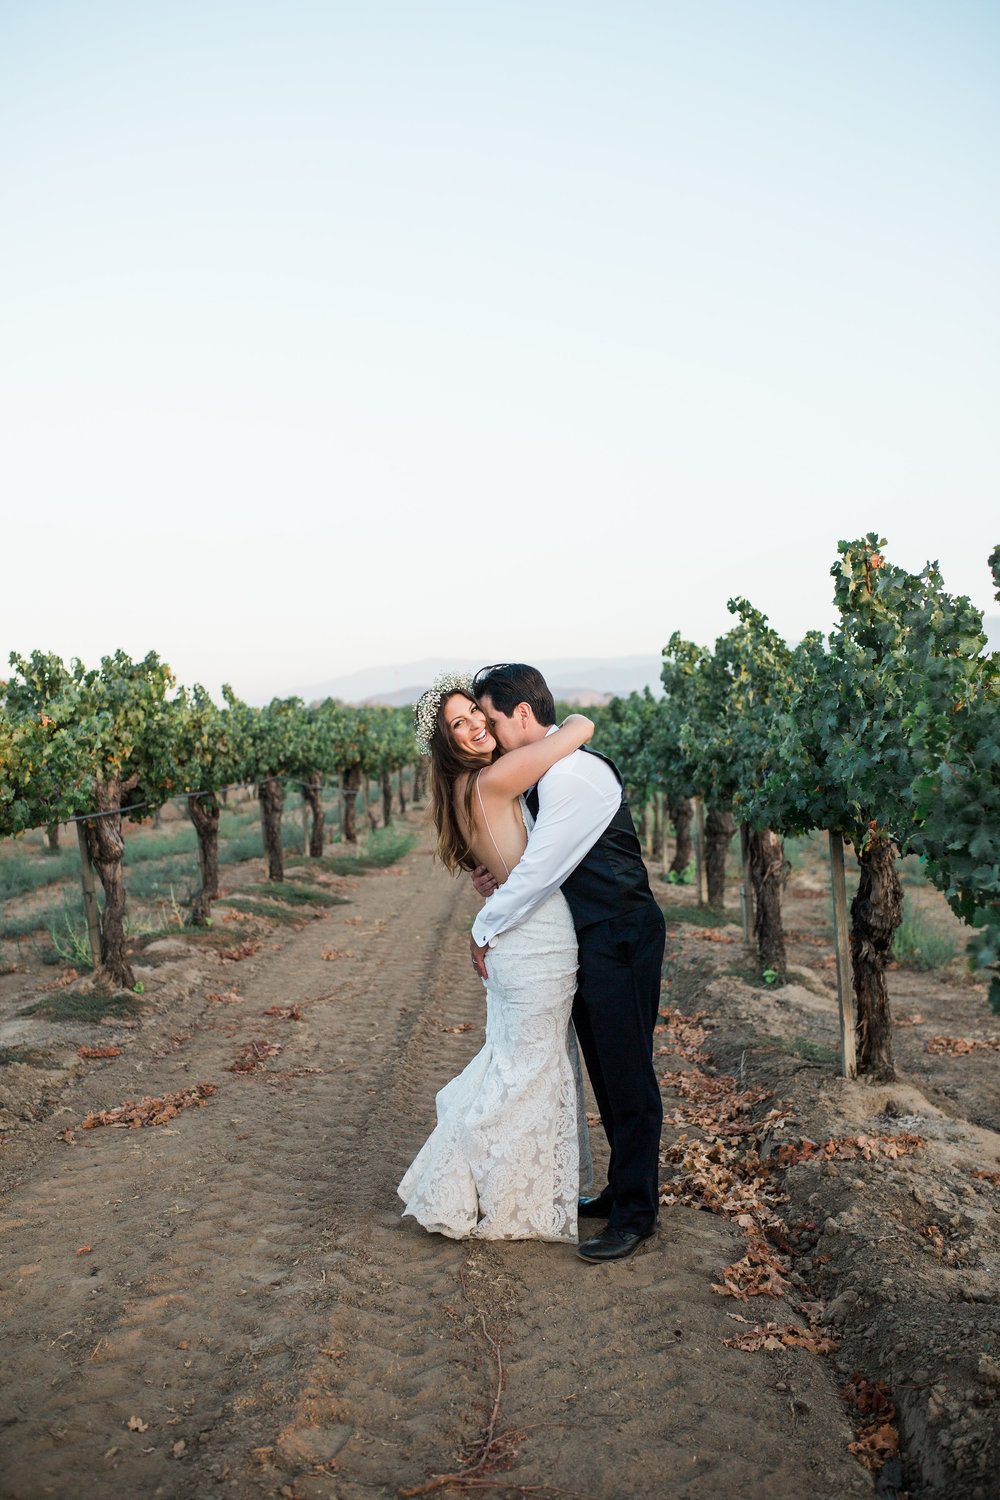 winery weddings, temecula wedding photographer, featured wedding photographer